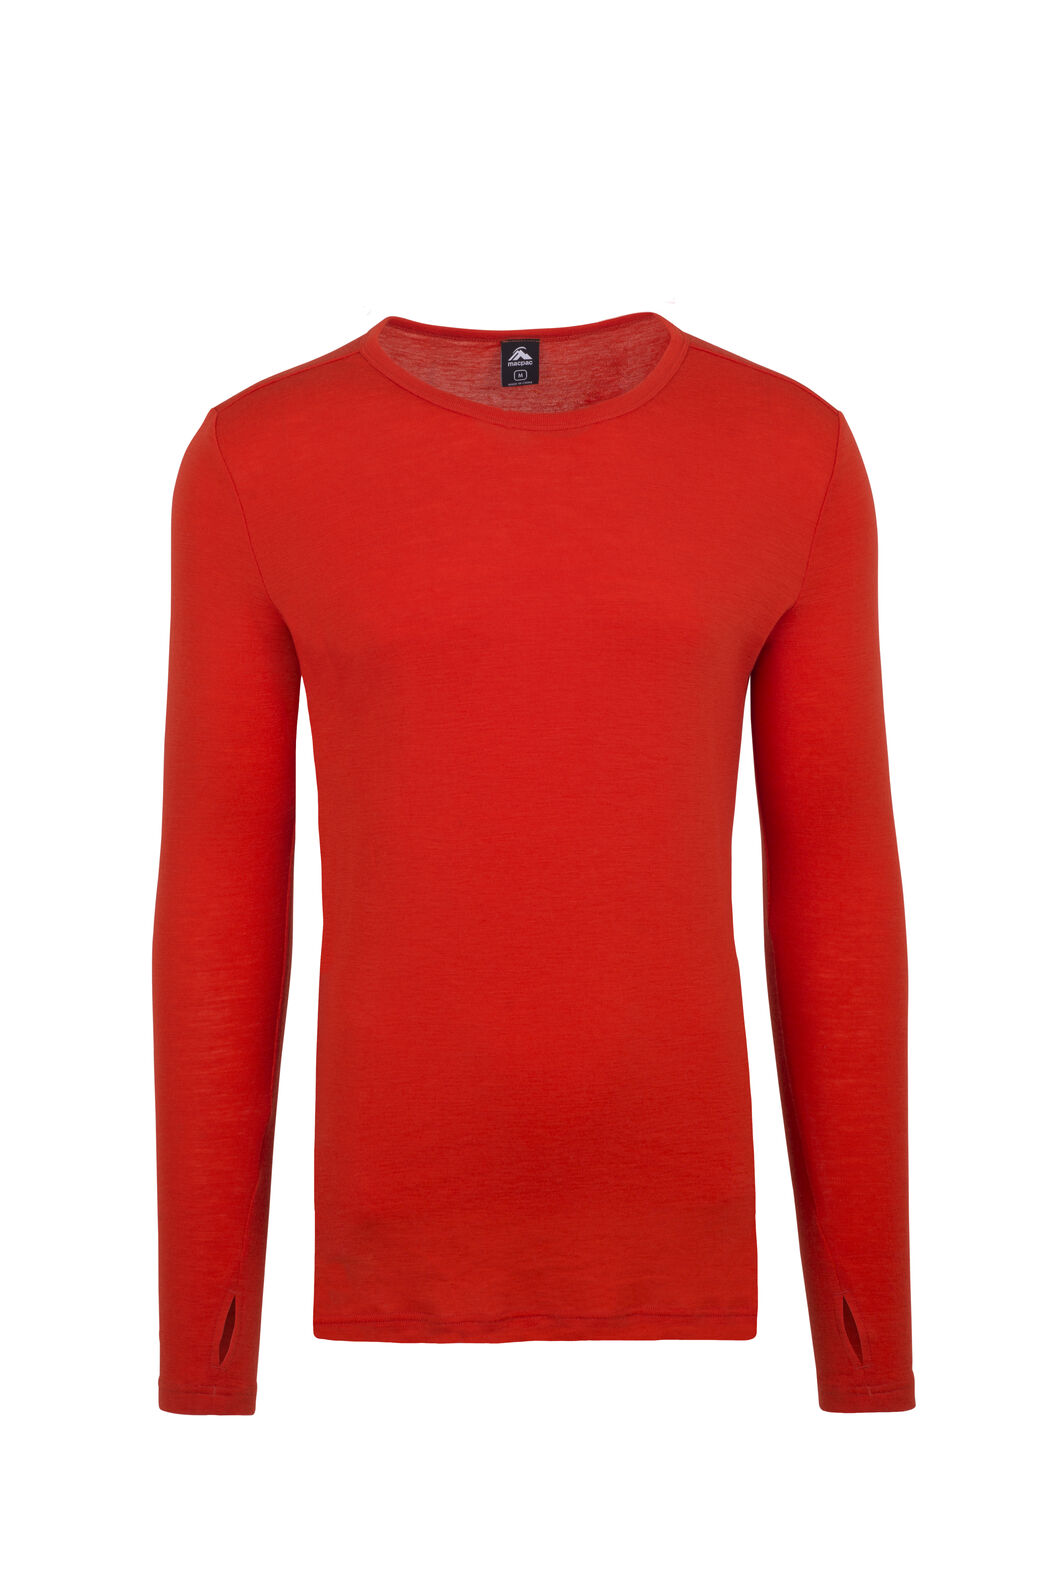 Macpac 220 Merino Long Sleeve Top - Men's, Spicy Orange, hi-res